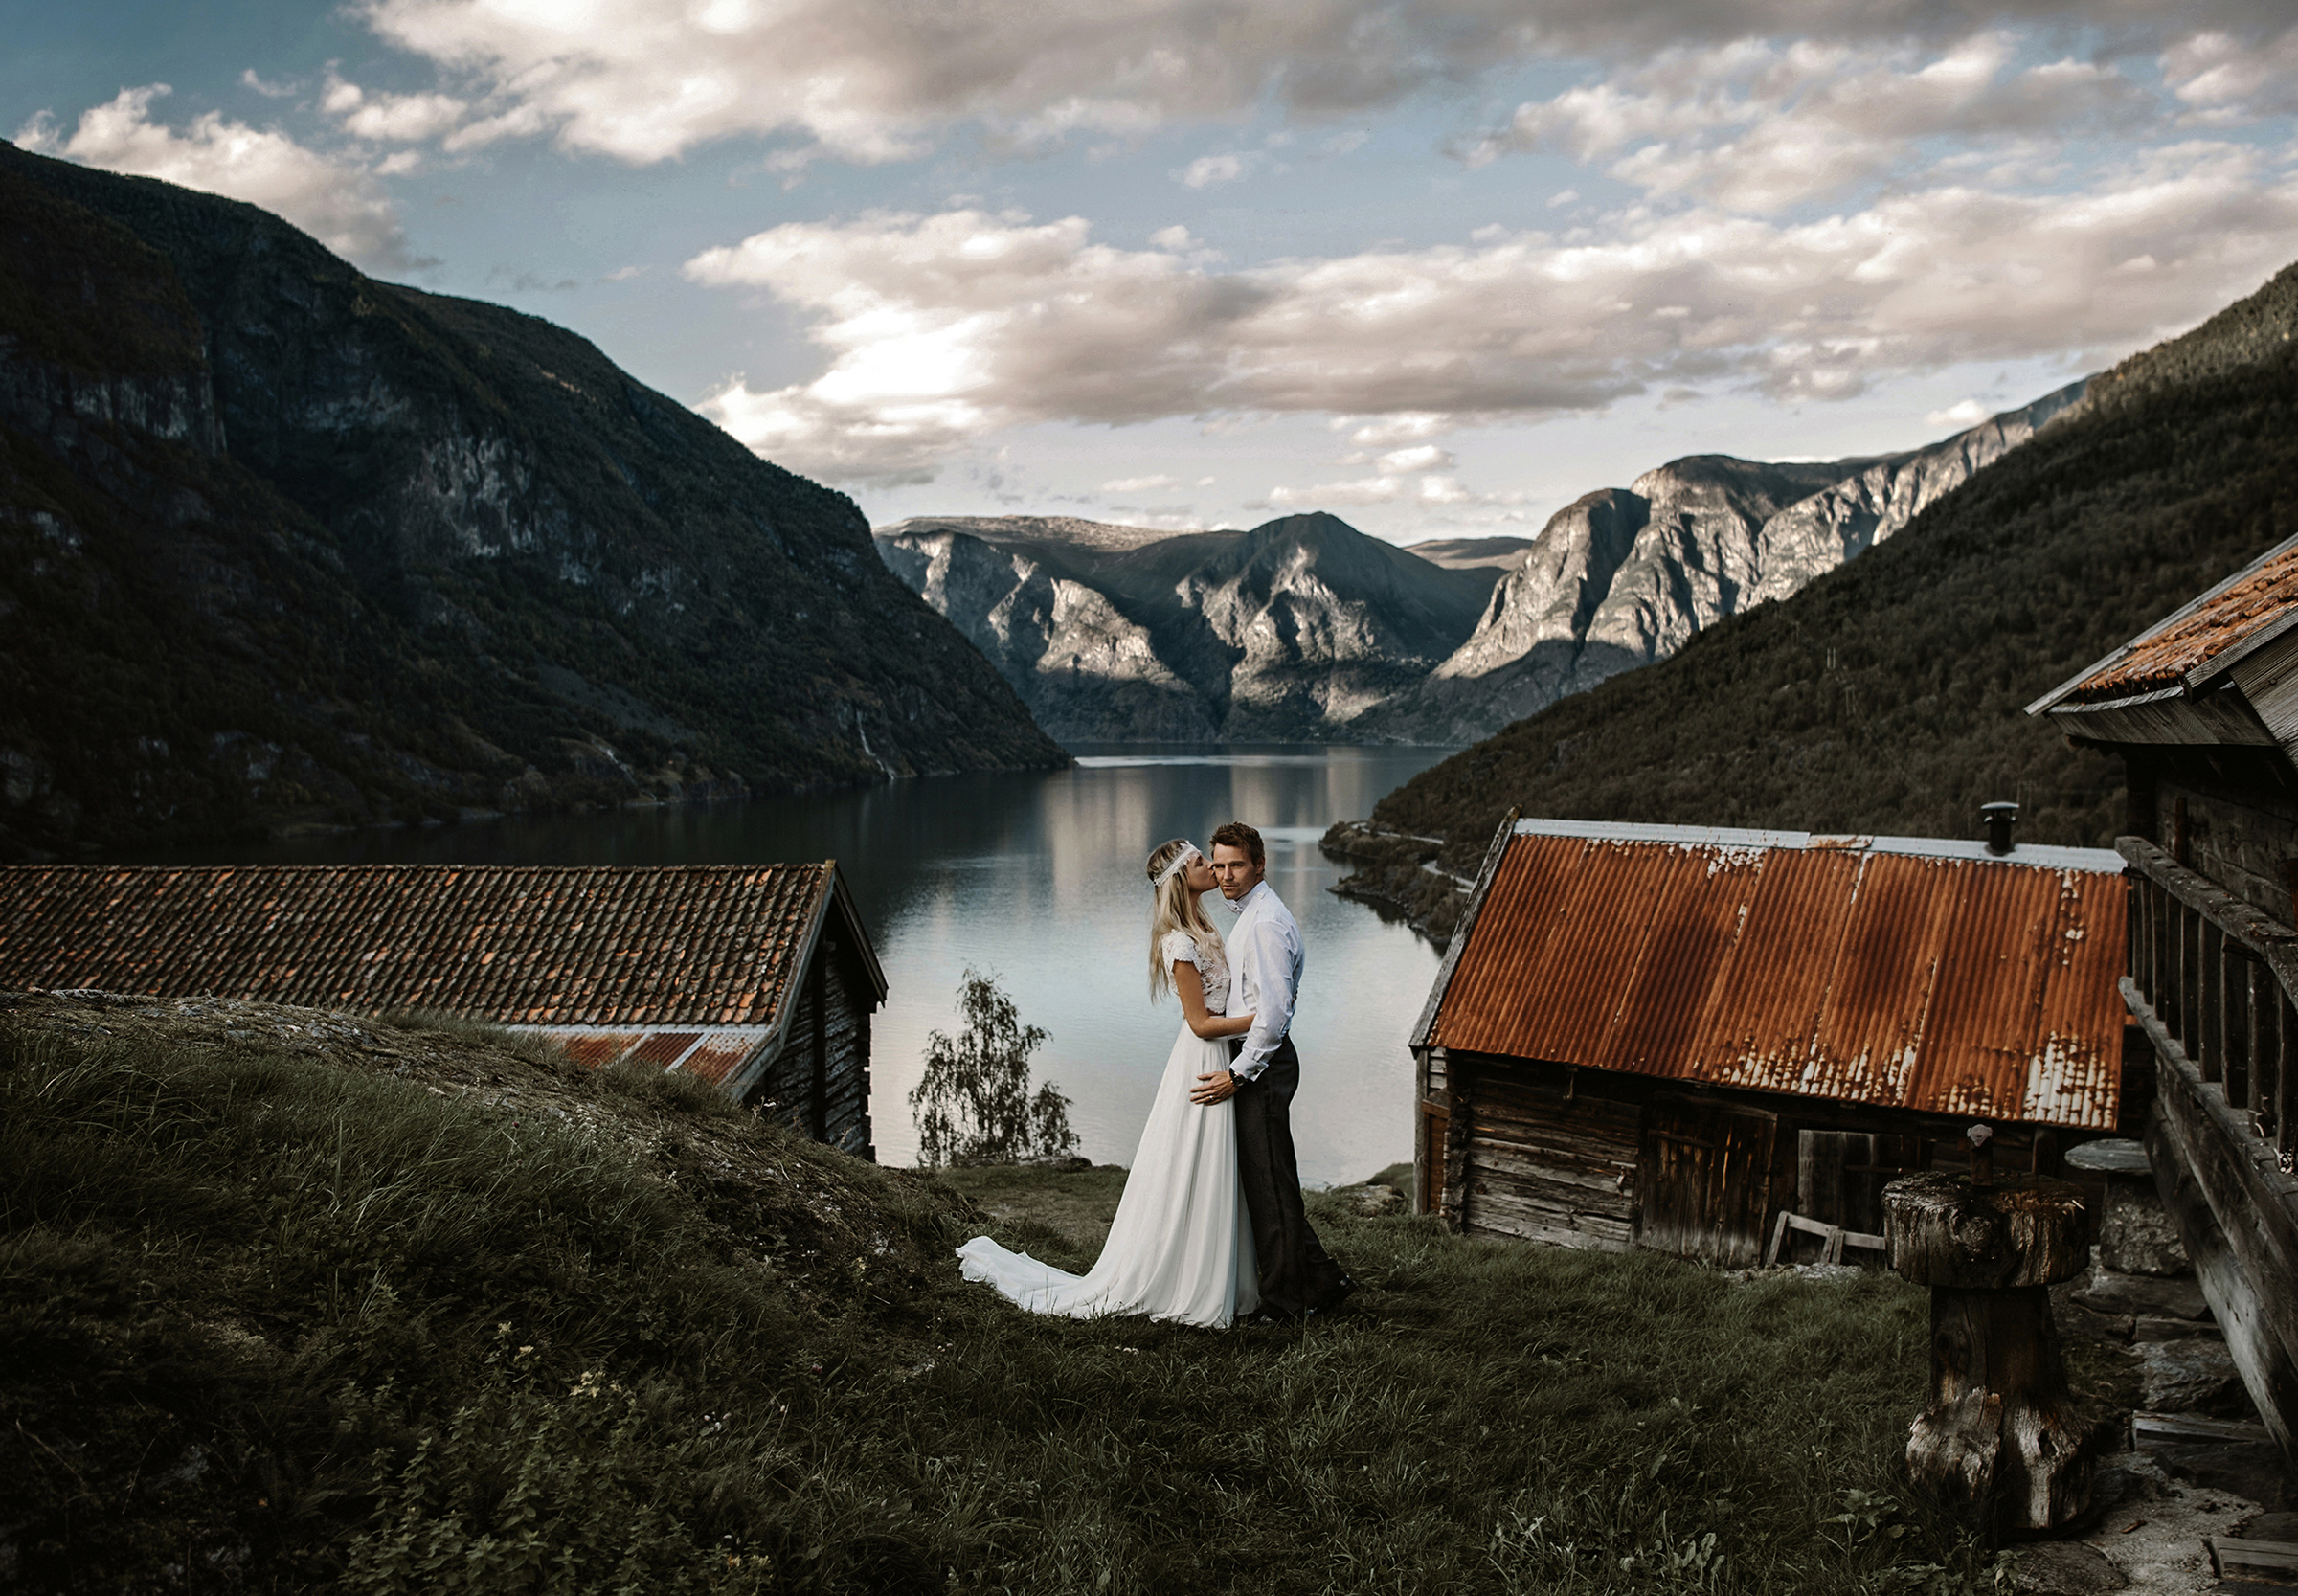 Couple against lake and mountains and dramatic mountain scenery - photo by Frøydis